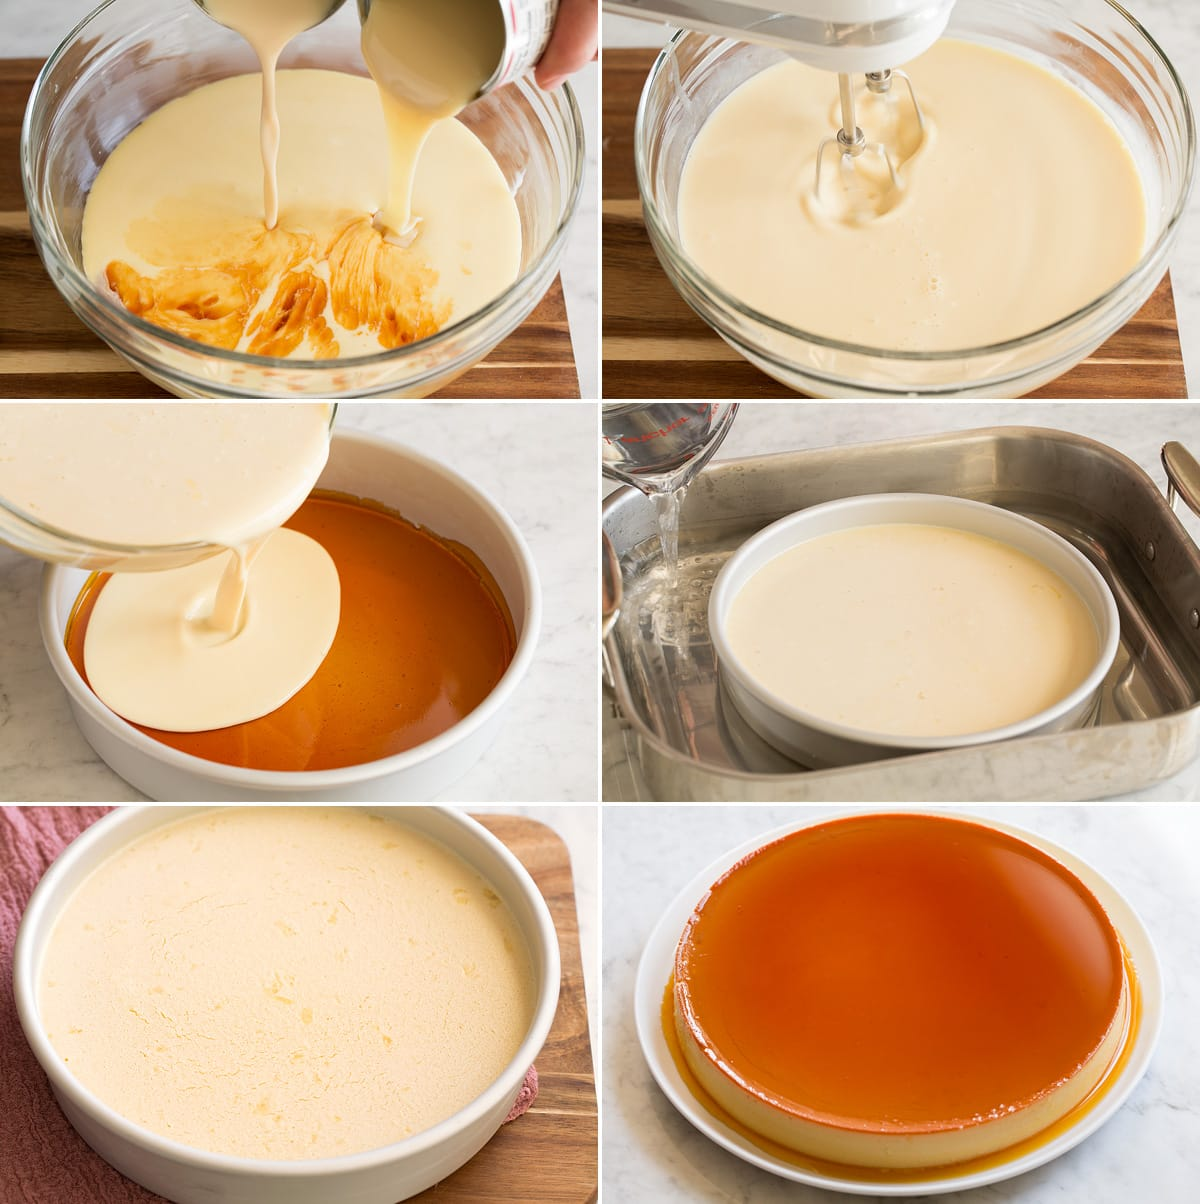 Collage of six images showing continued steps of making flan filling, pouring it into pan over caramel layer, and placing in water bath. Then flan is shown after baking and inverted.